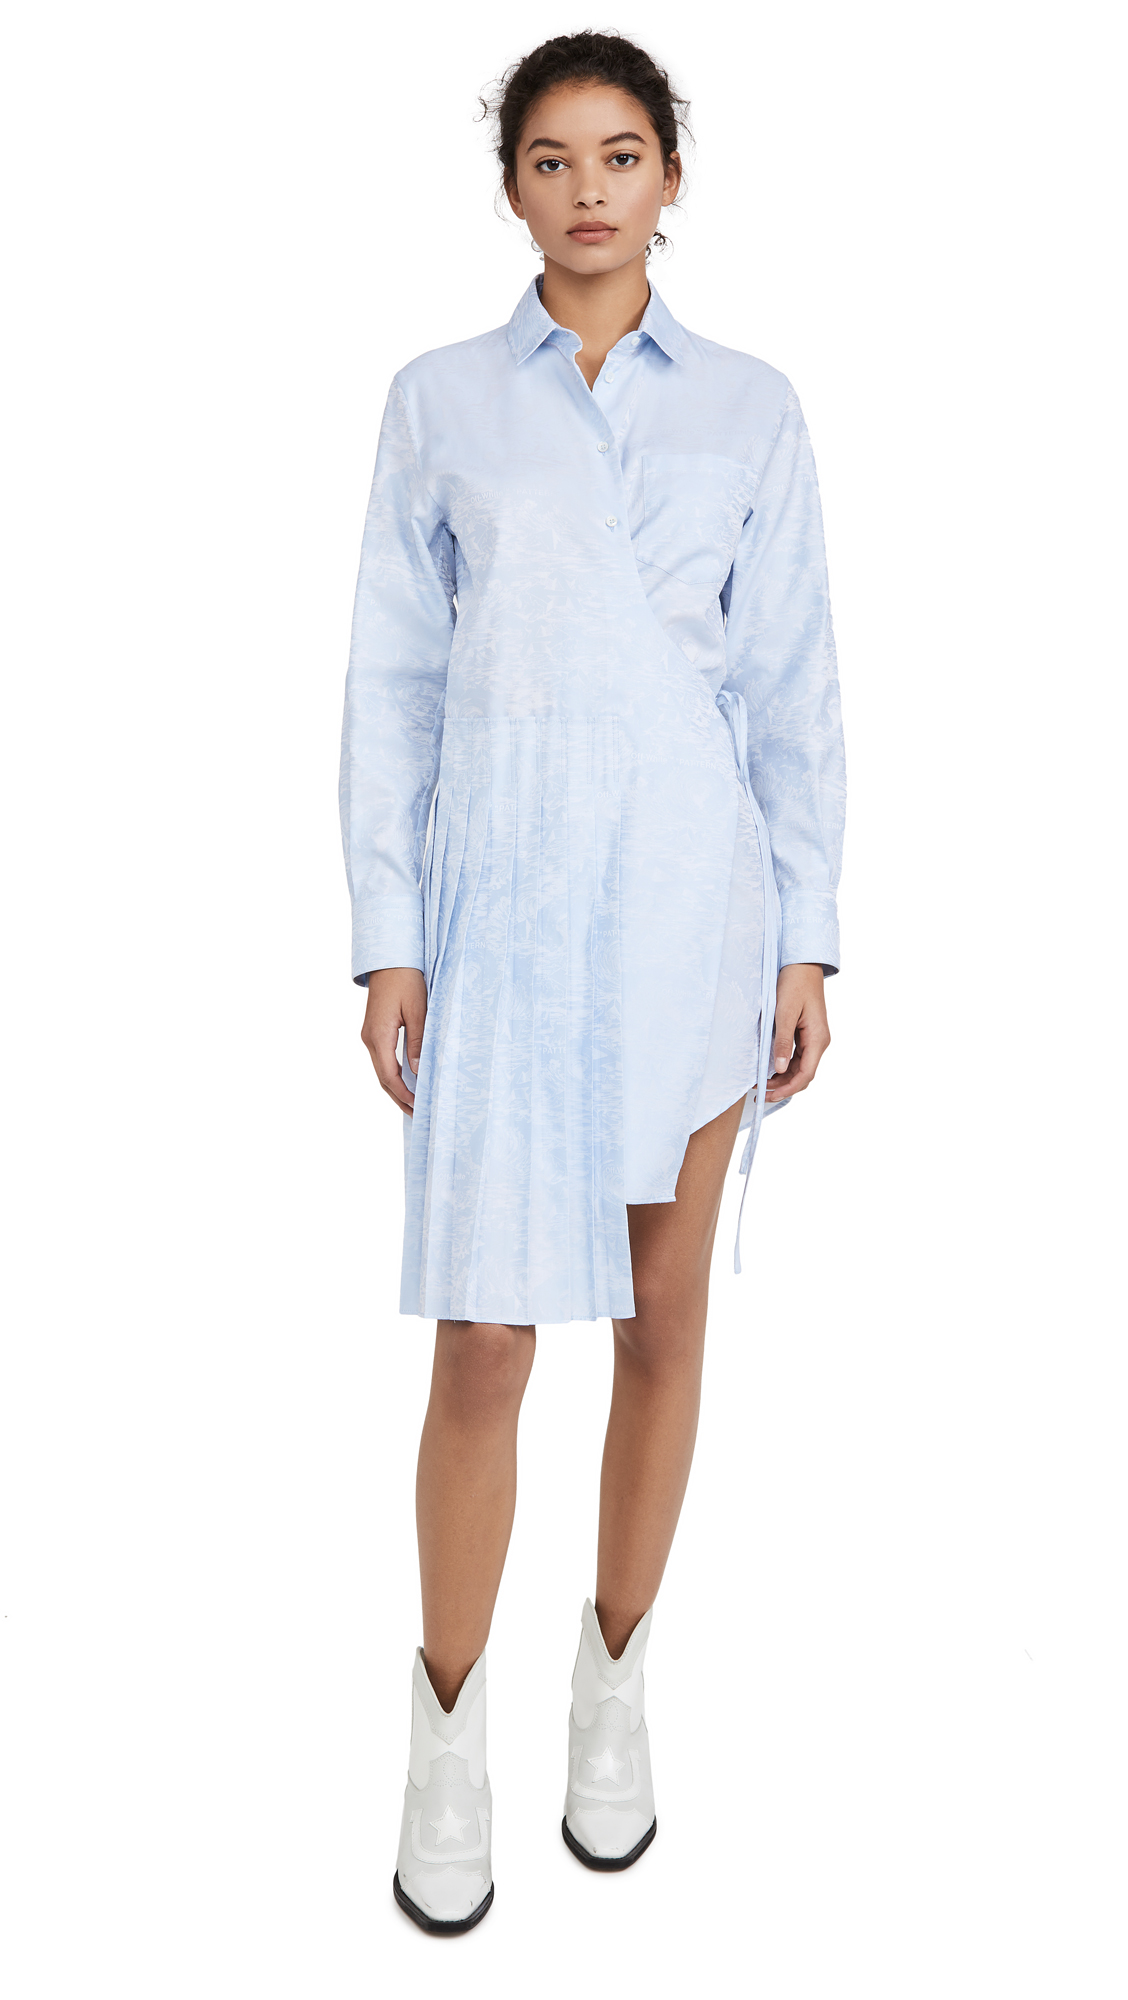 Off-White Waves Wrap Panel Shirt Dress - 50% Off Sale